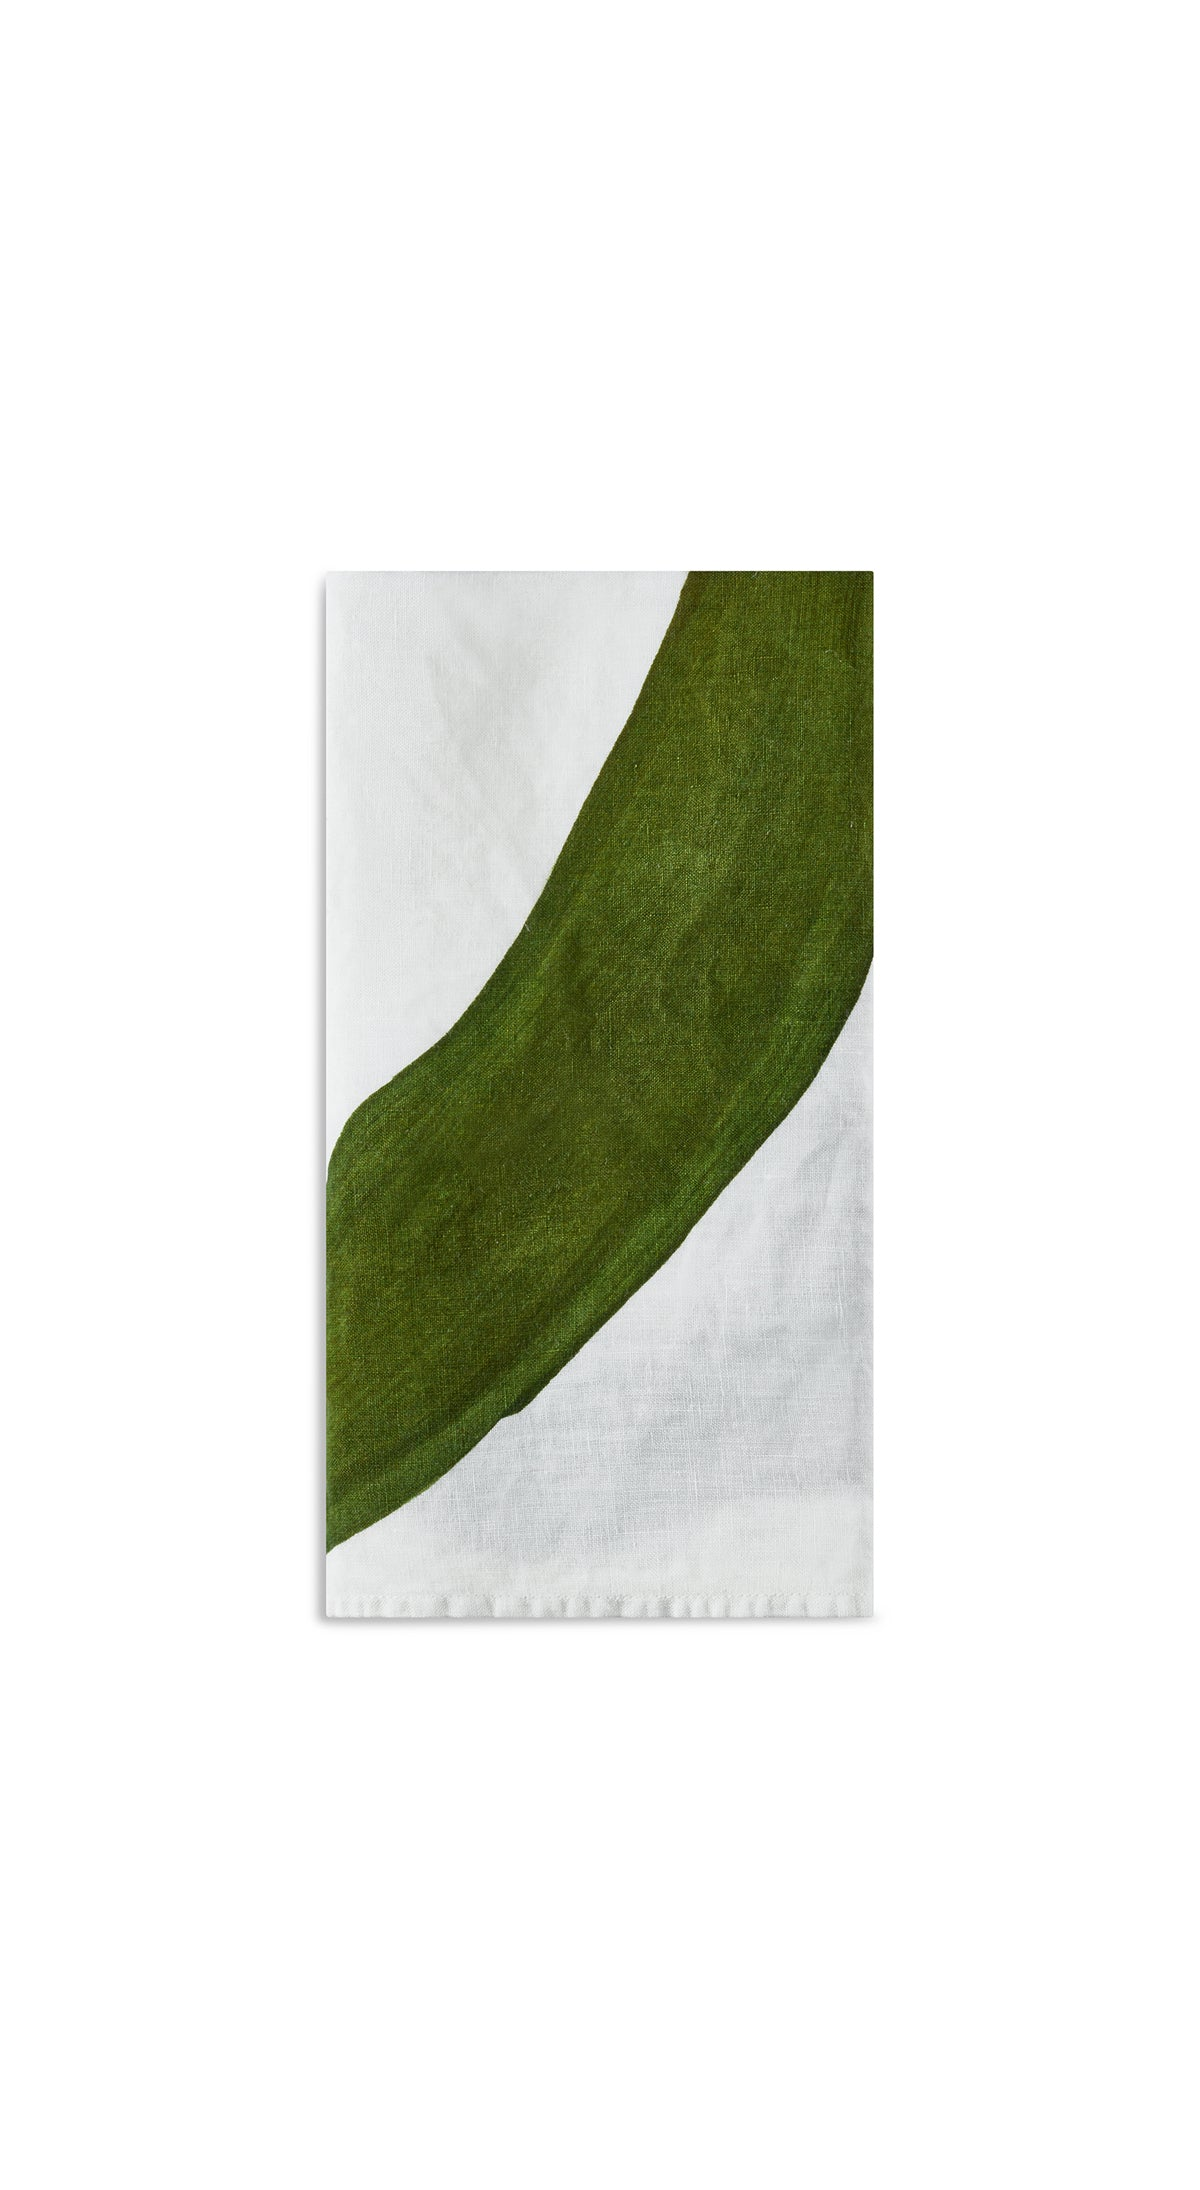 Alphabet Napkin 'O' in Avocado Green